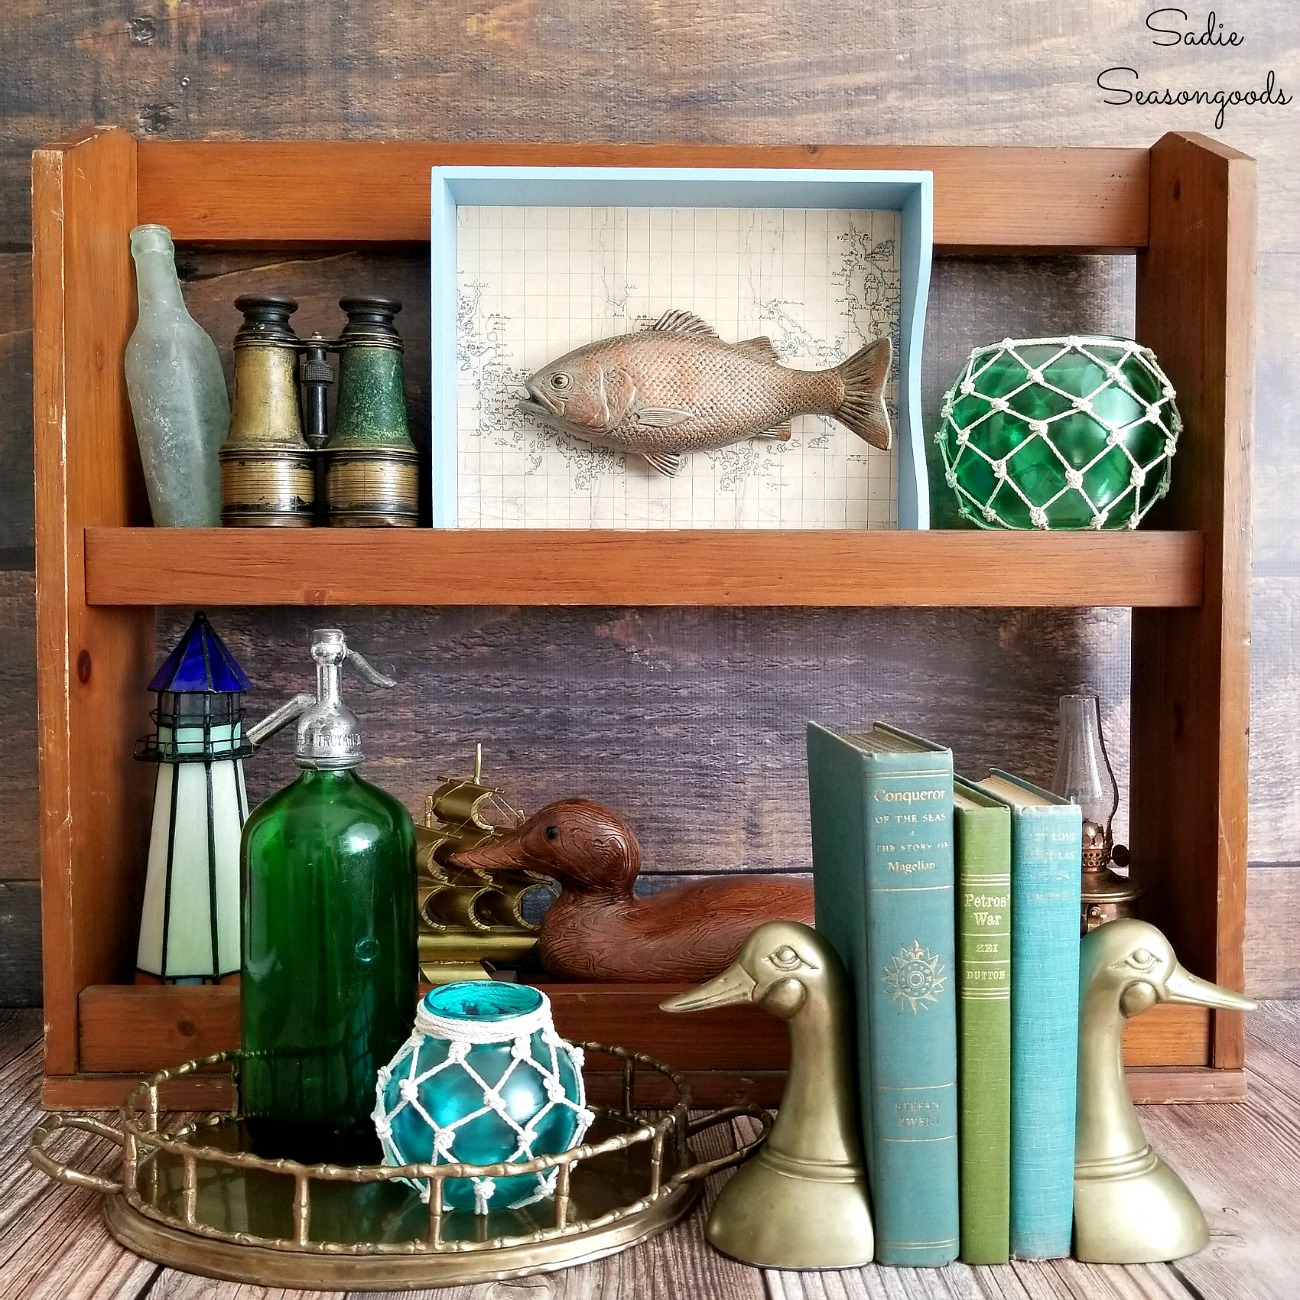 House Decors Ideas Lake House Decor And Lake House Decorating Ideas From The Thrift Store